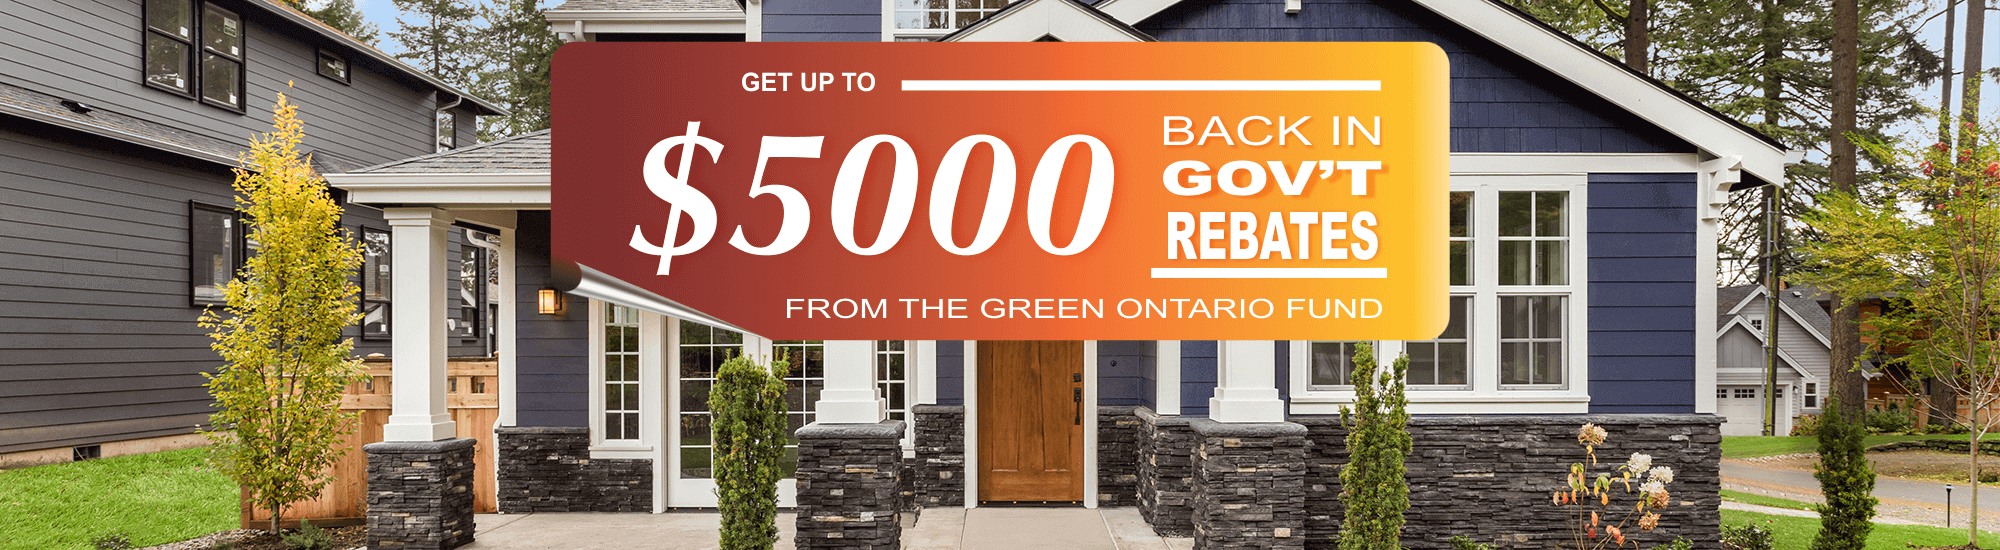 Green Ontario $5000 Rebate